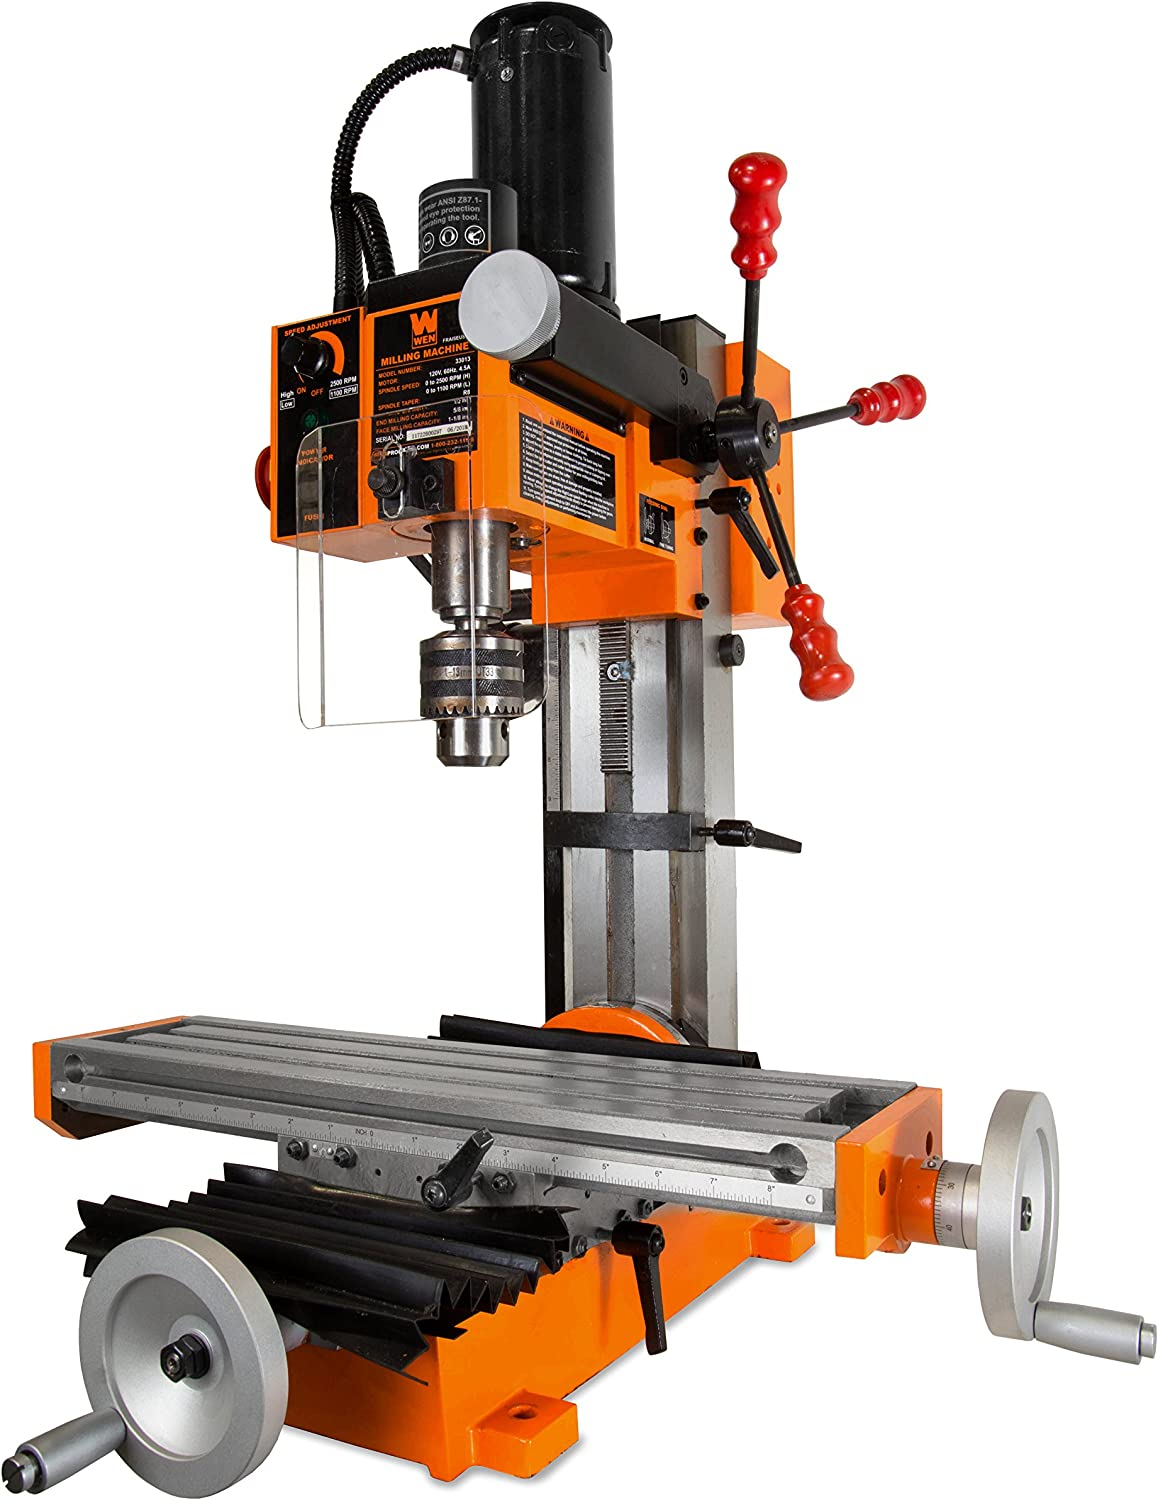 WEN 33013 Compact Benchtop Milling Machine with R8 Taper